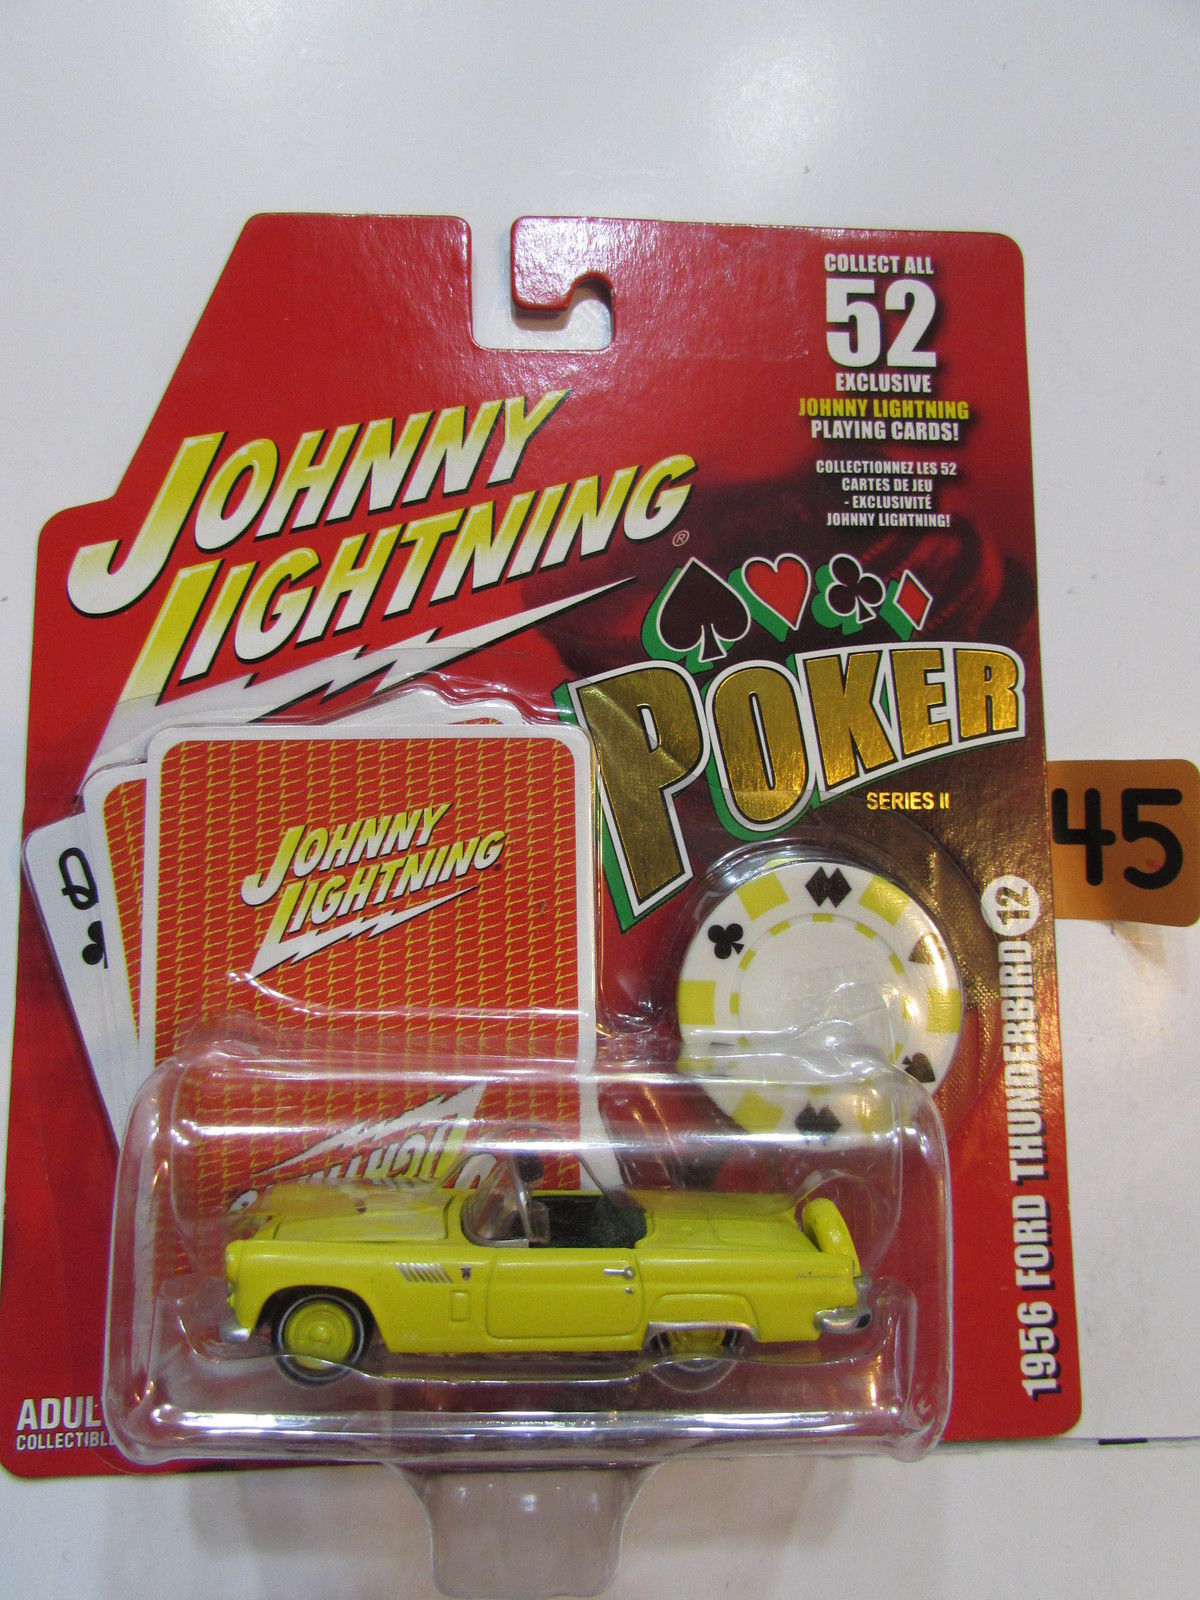 JOHNNY LIGHTNING POKER SERIES II - 1956 FORD THUNDERBIRD #12